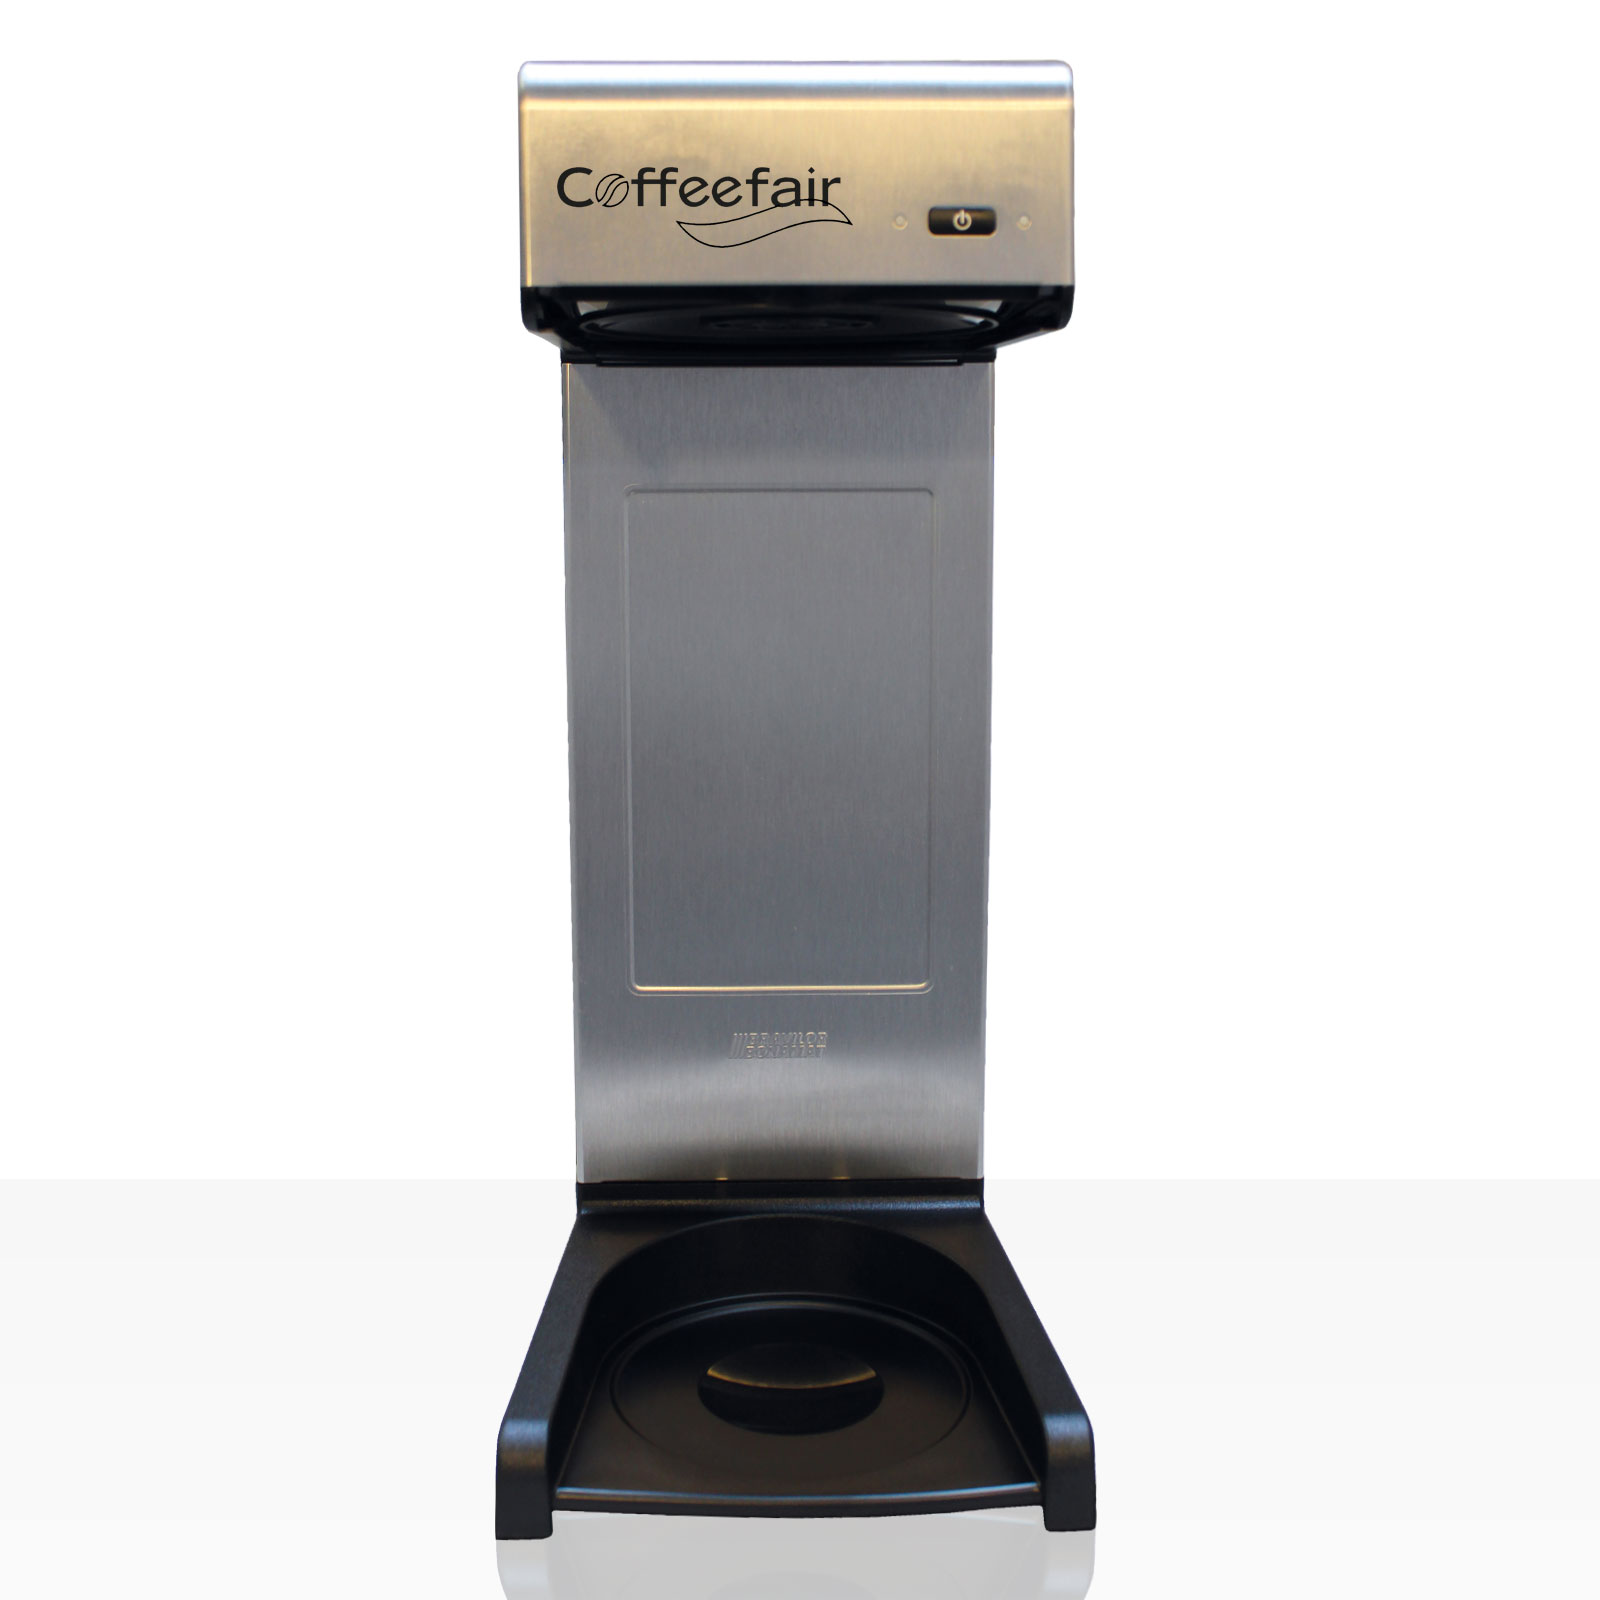 Bonamat TH10 Kaffeemaschine Coffeefair - ohne Kanne (neues Design)